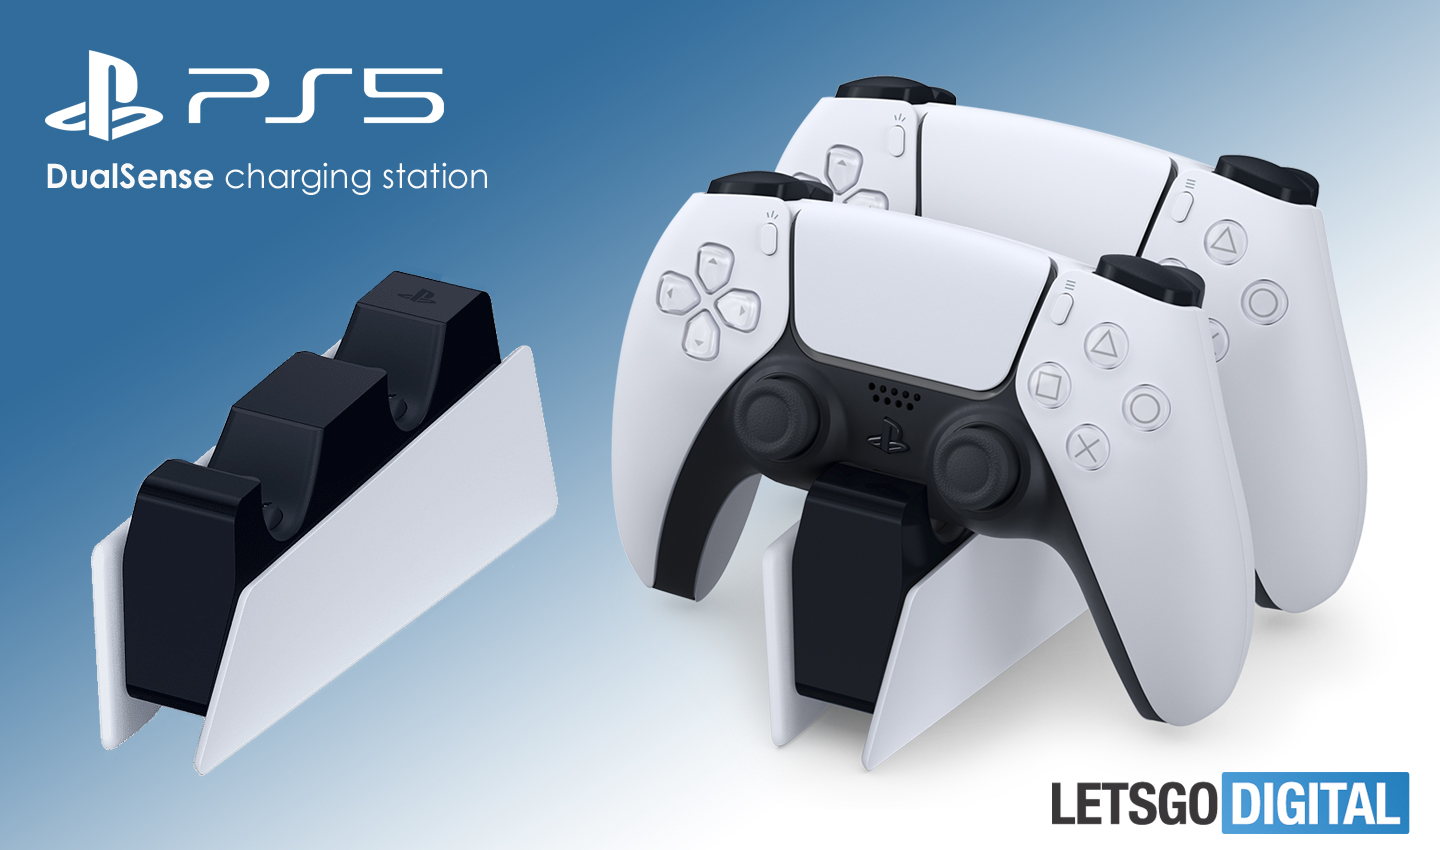 Playstation 5 charging station